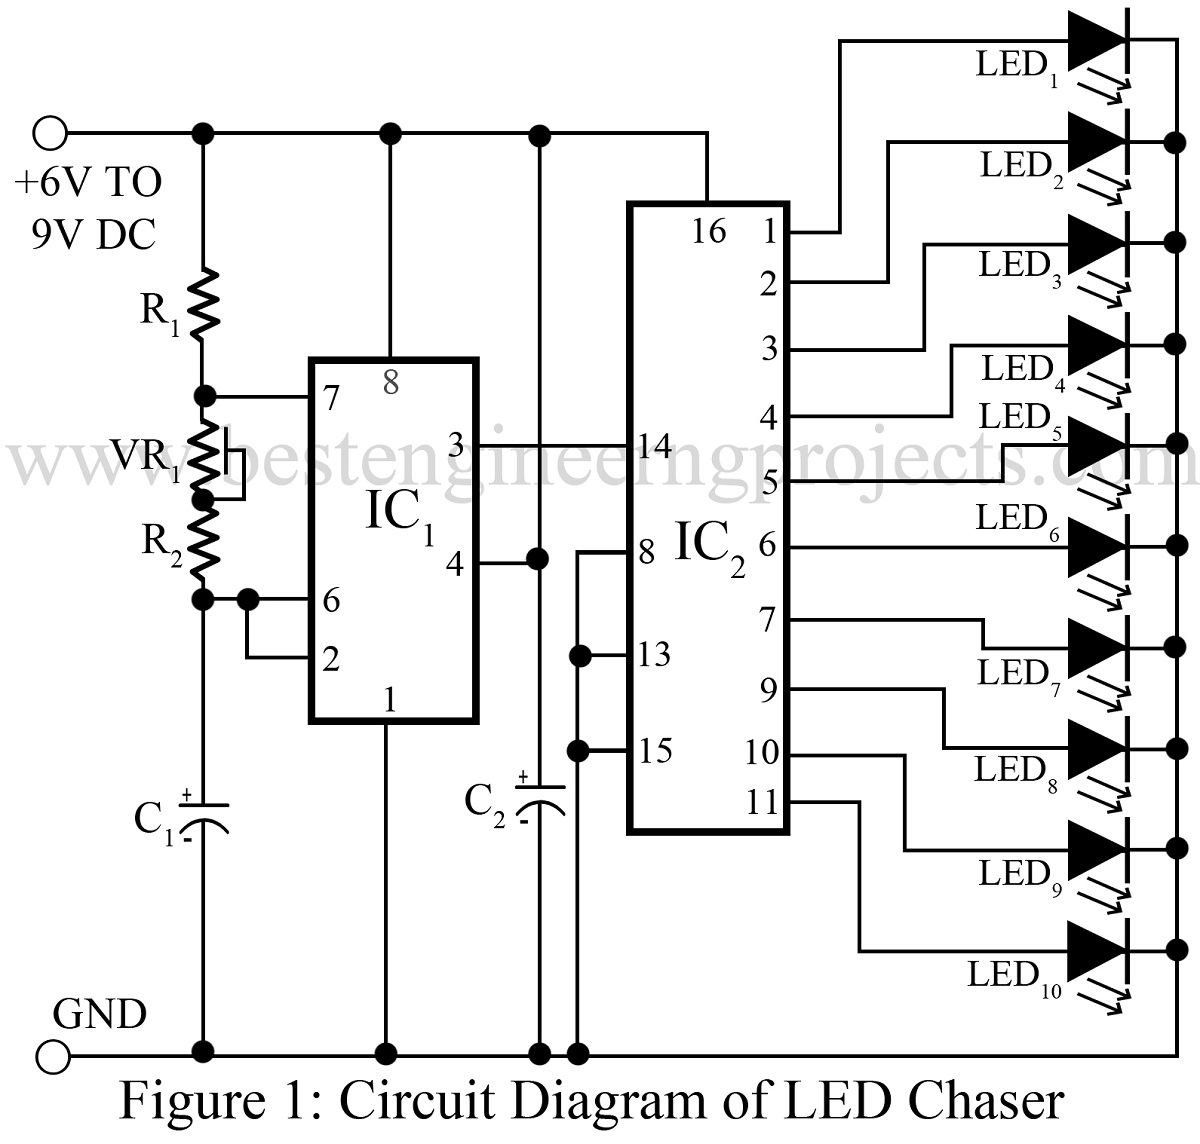 Led Chaser Circuit Diagram 26 Wiring Images Index 20 Sensor Seekiccom Of Chaserssl1 Best Engineering